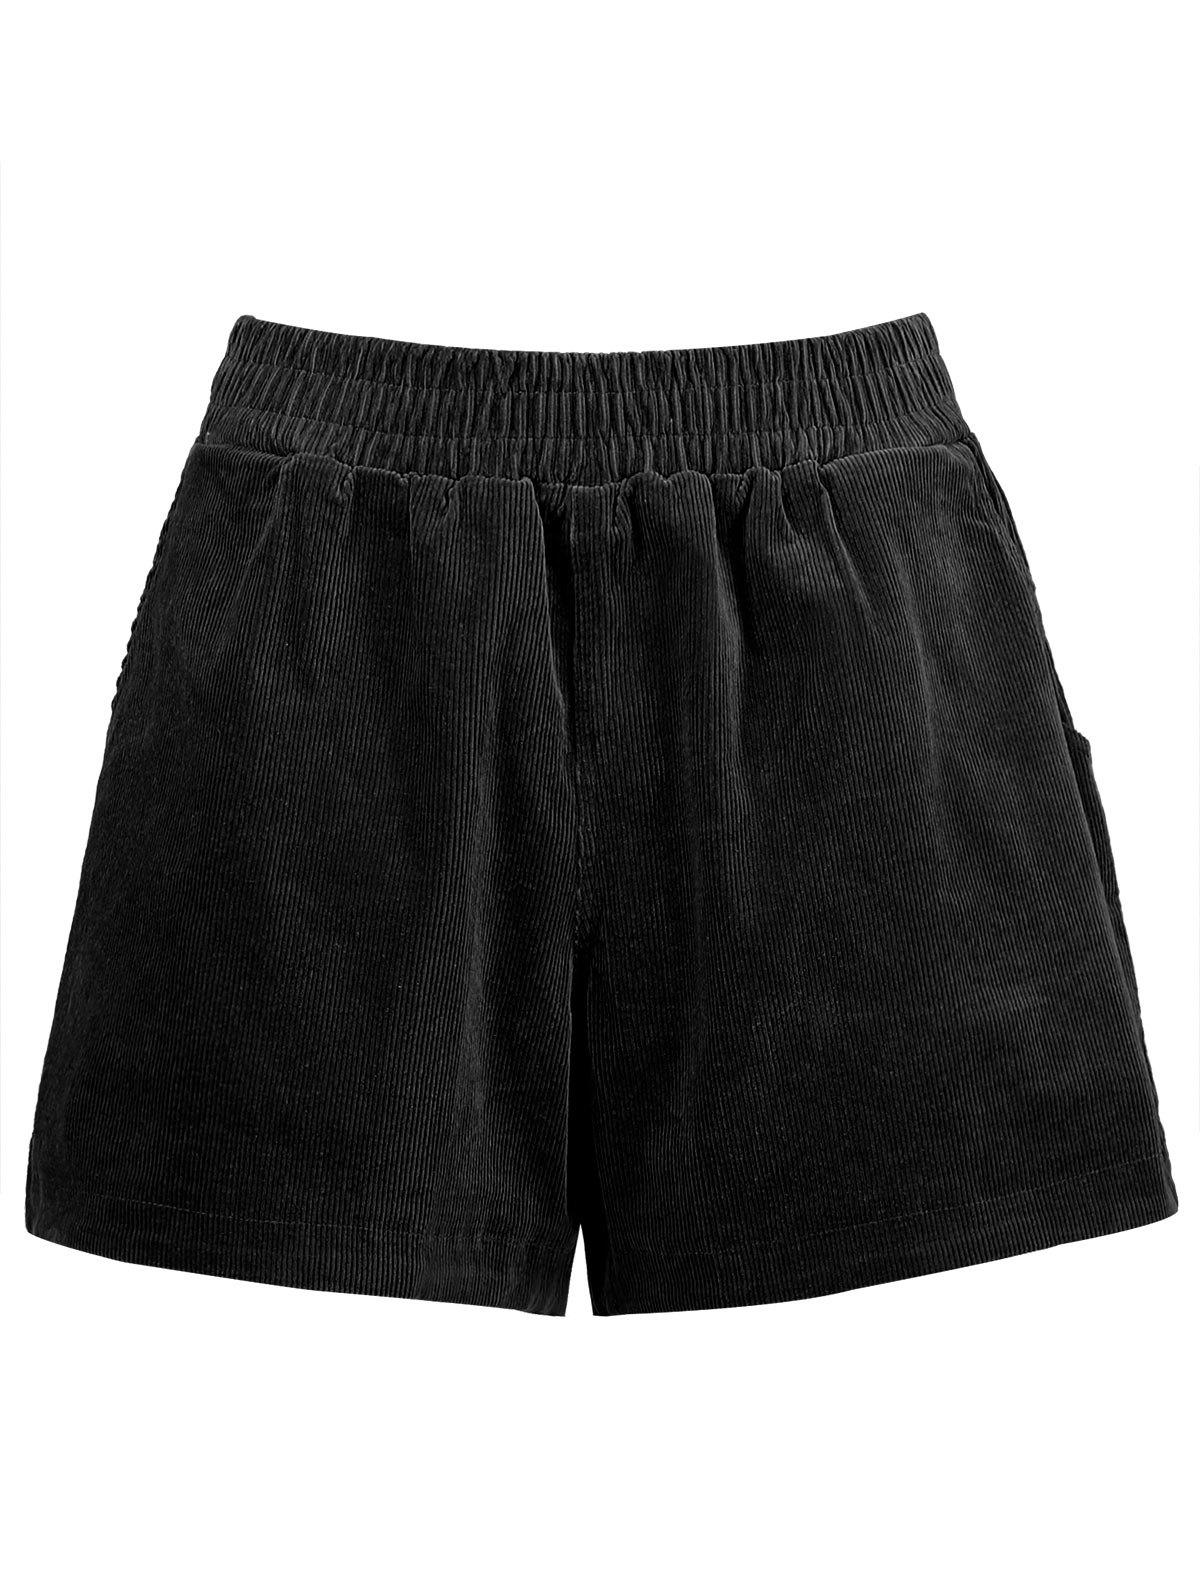 Plus Size Corduroy Pocket Shorts - BLACK 5XL